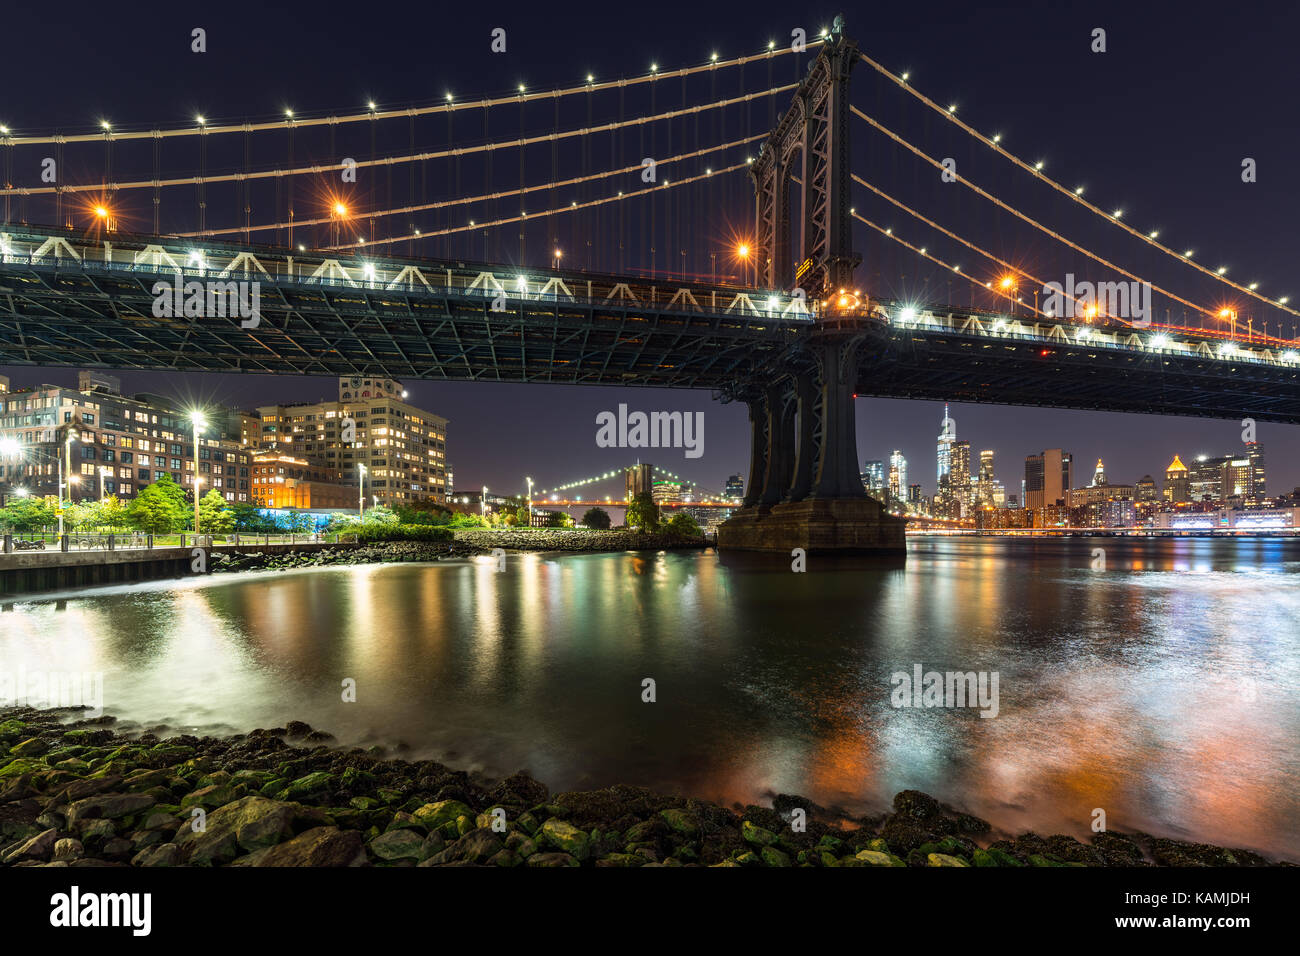 Main Street Park et le Manhattan Bridge at night. Dumbo, Brooklyn, New York City Banque D'Images